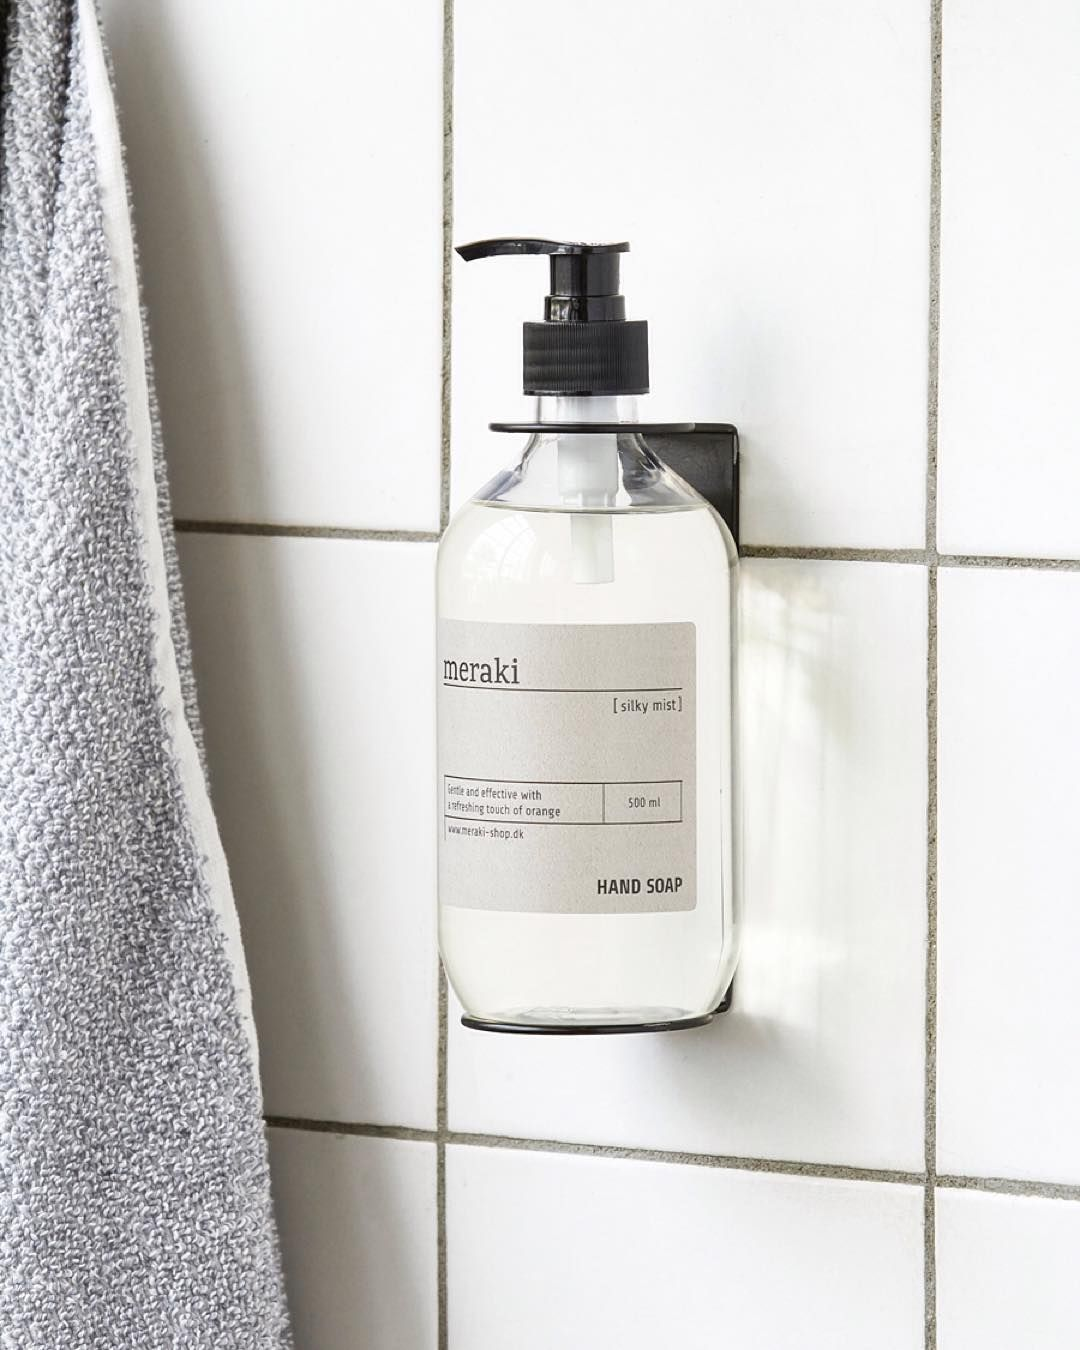 Pin By Coco On For The Home Bathroom Soap Dispenser Soap